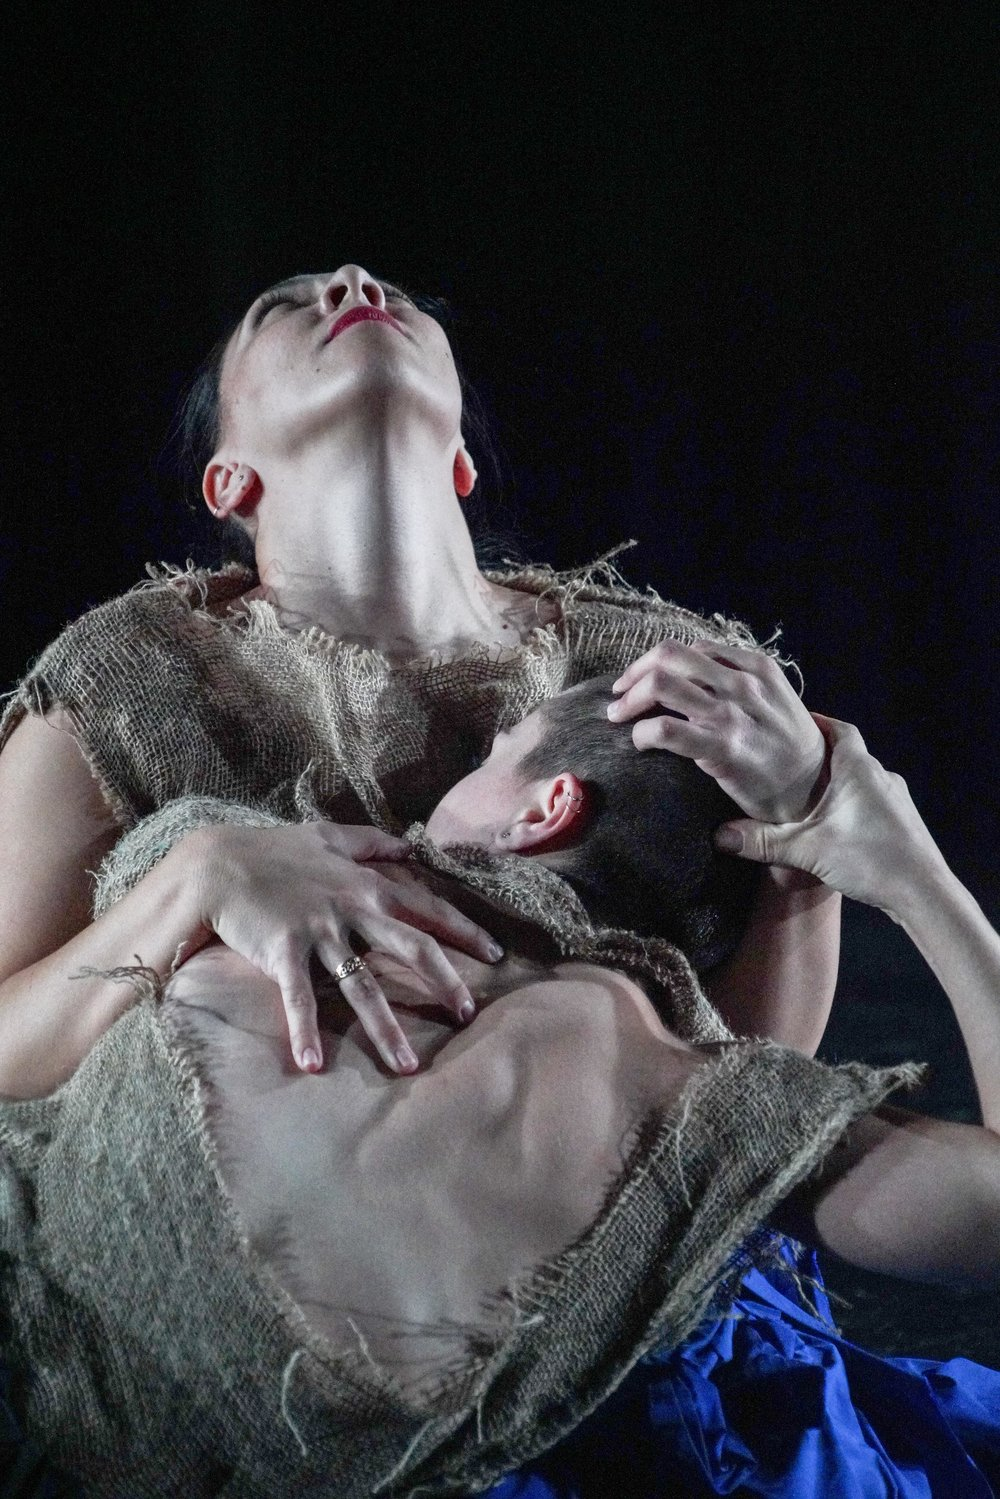 Amirov Dance Company performs The Order of Pearls (excerpt) strings together a chain of relationships unveiling the multiplicities of womanhood.